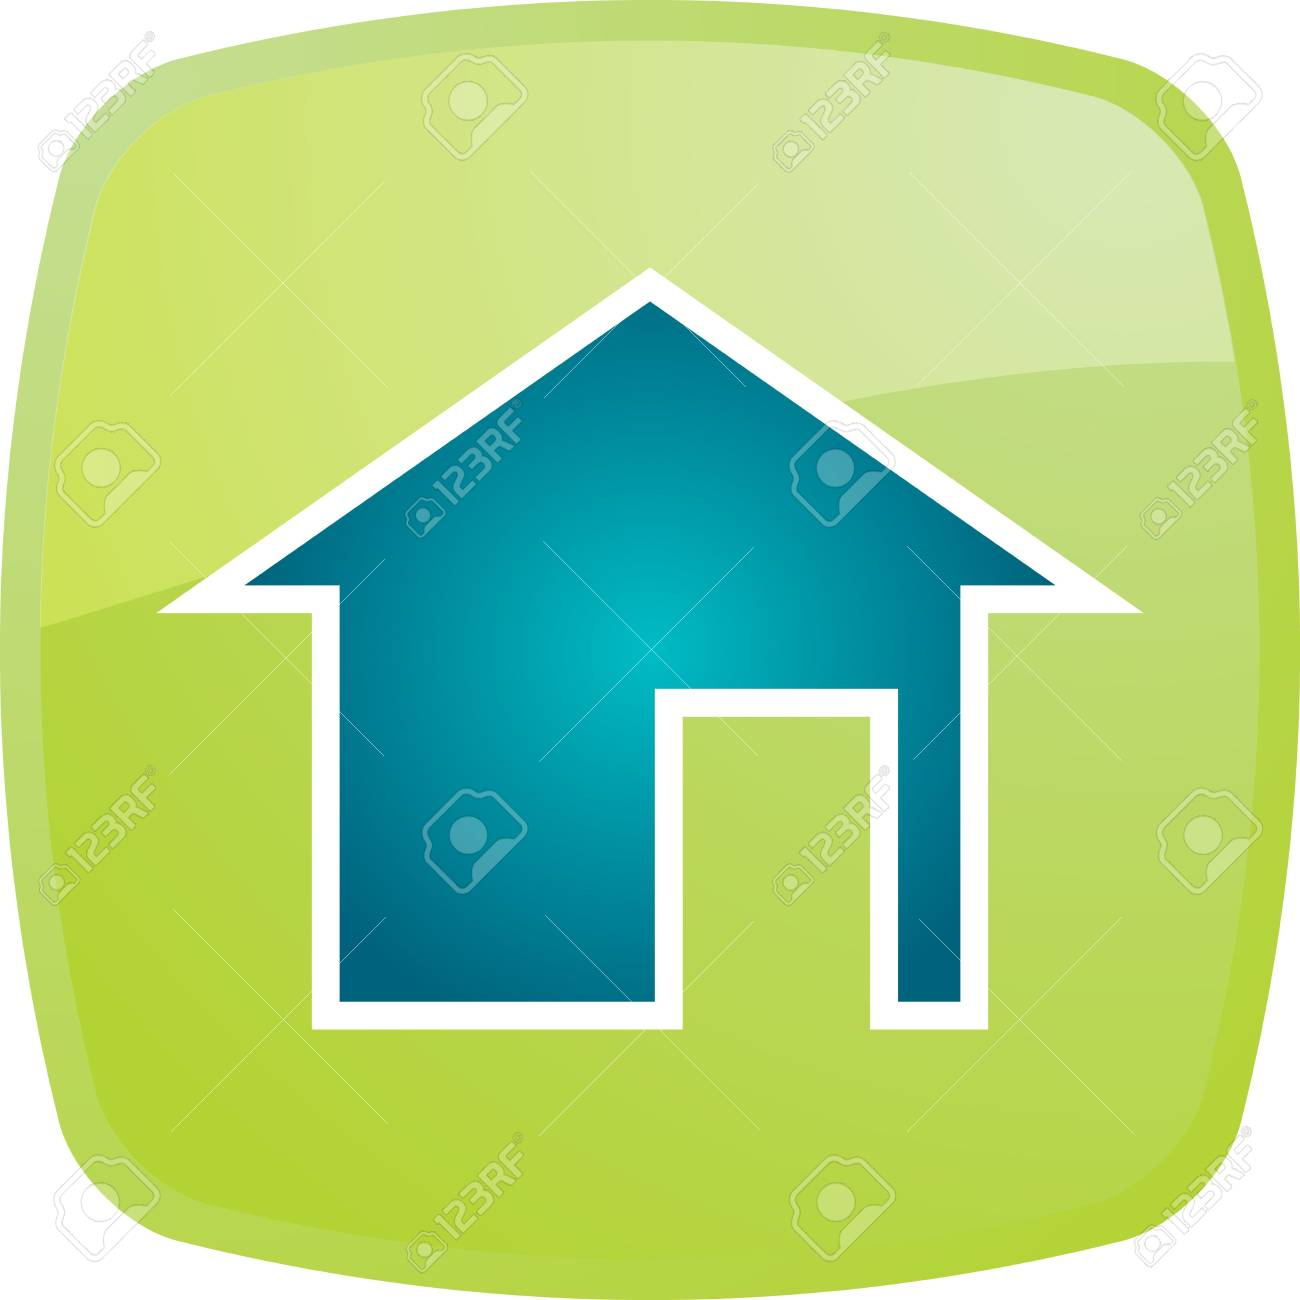 Home navigation icon glossy button, square shape Stock Photo - 5158223